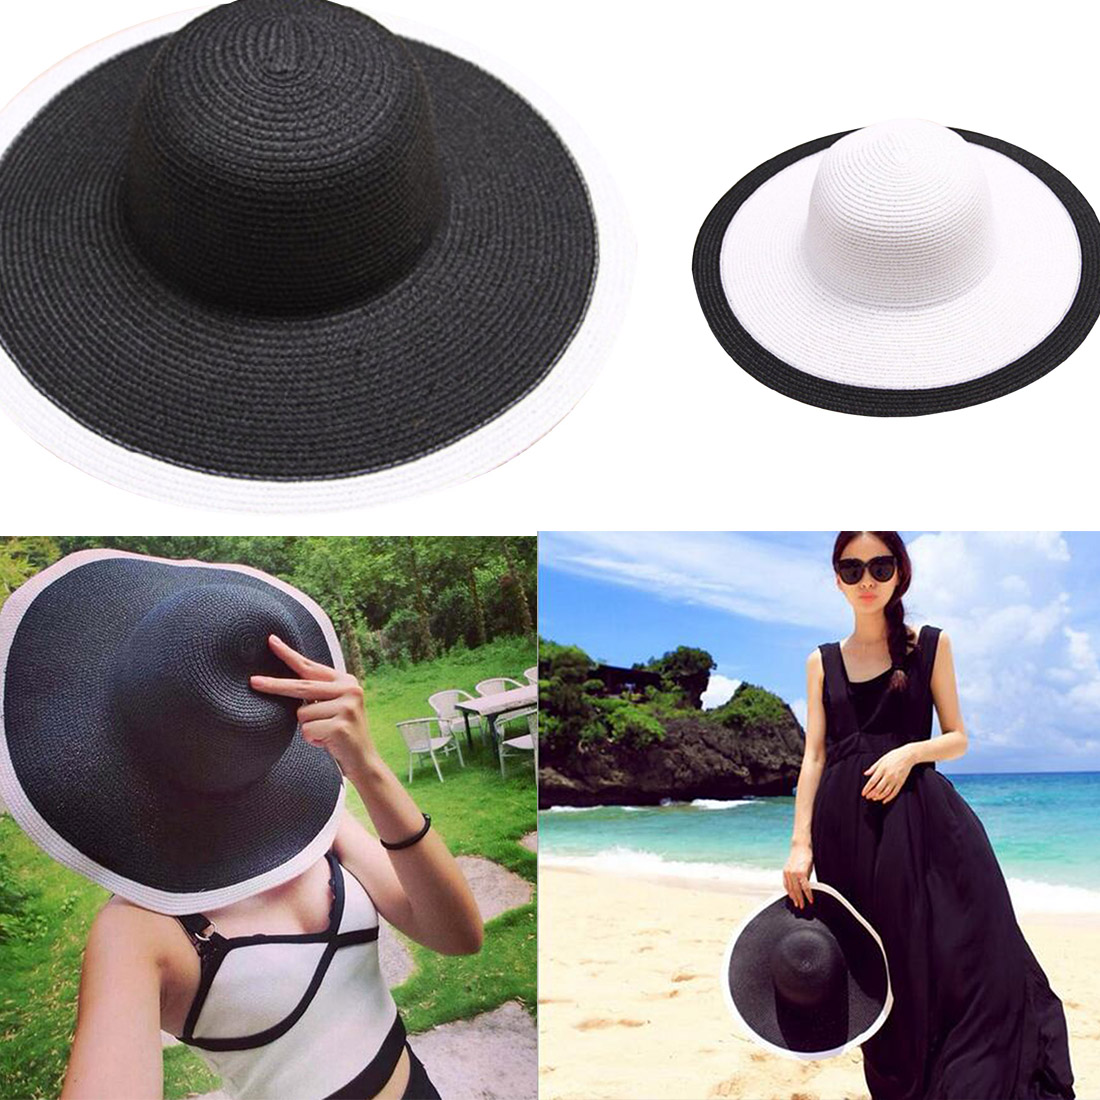 New Spring Summer Hats For Women Flower Beads Wide Brimmed Jazz Panama Hat  Sun Visor Beach Hat Flower Pearl rivet Straw HatUSD 5.99 piece ... 30b39128f7e8